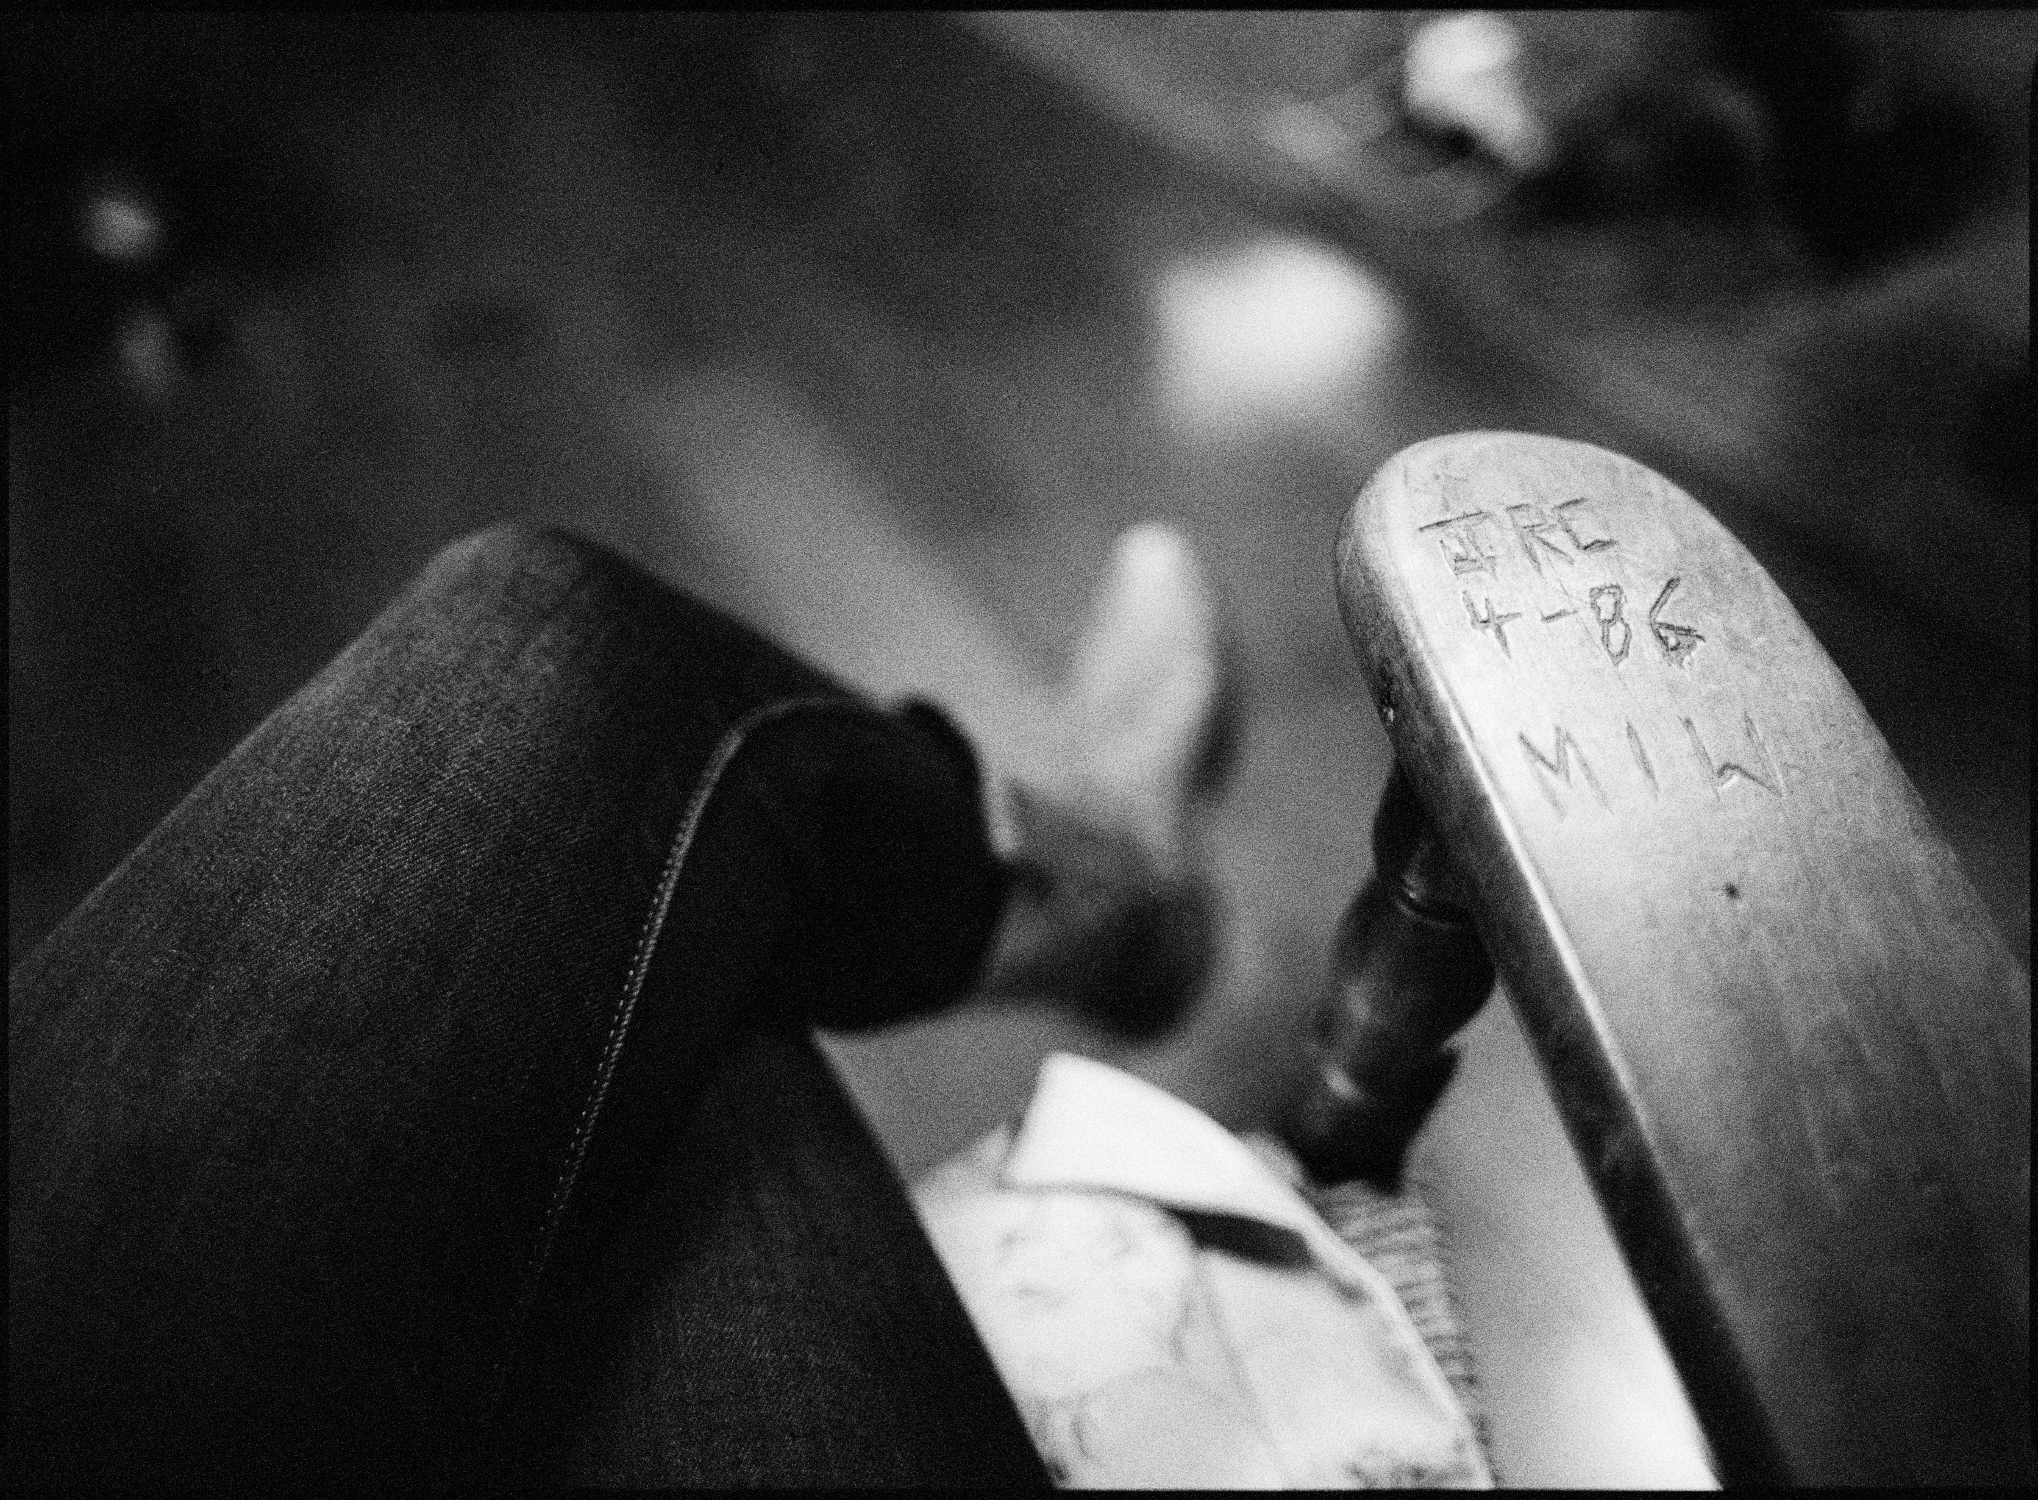 Johnny Cash's rocking chair and initials, LP's boot